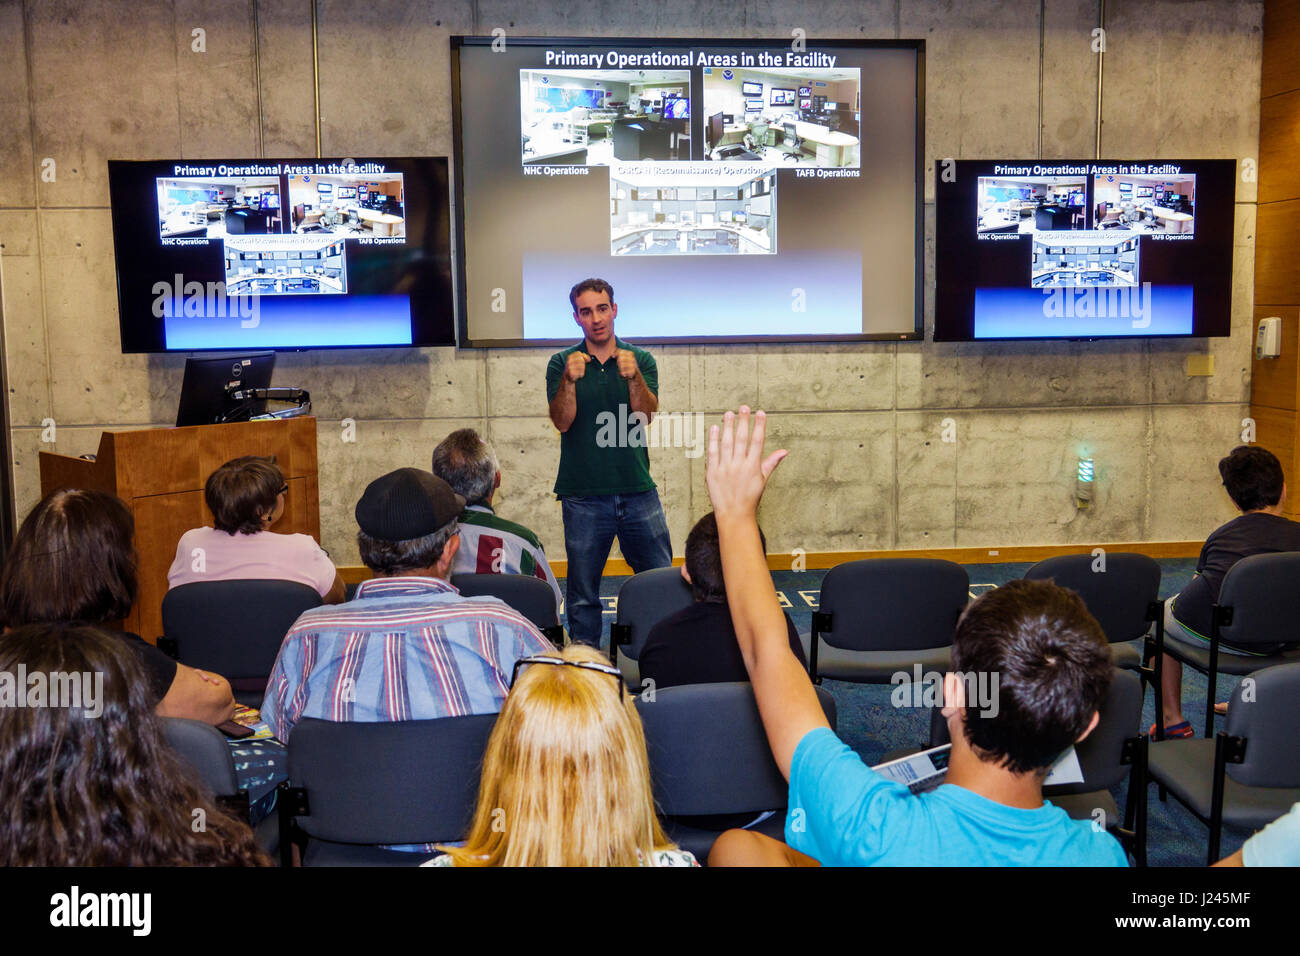 Miami Florida National Hurricane Center NHC NOAA National Weather Service open house interior presentation man audience - Stock Image